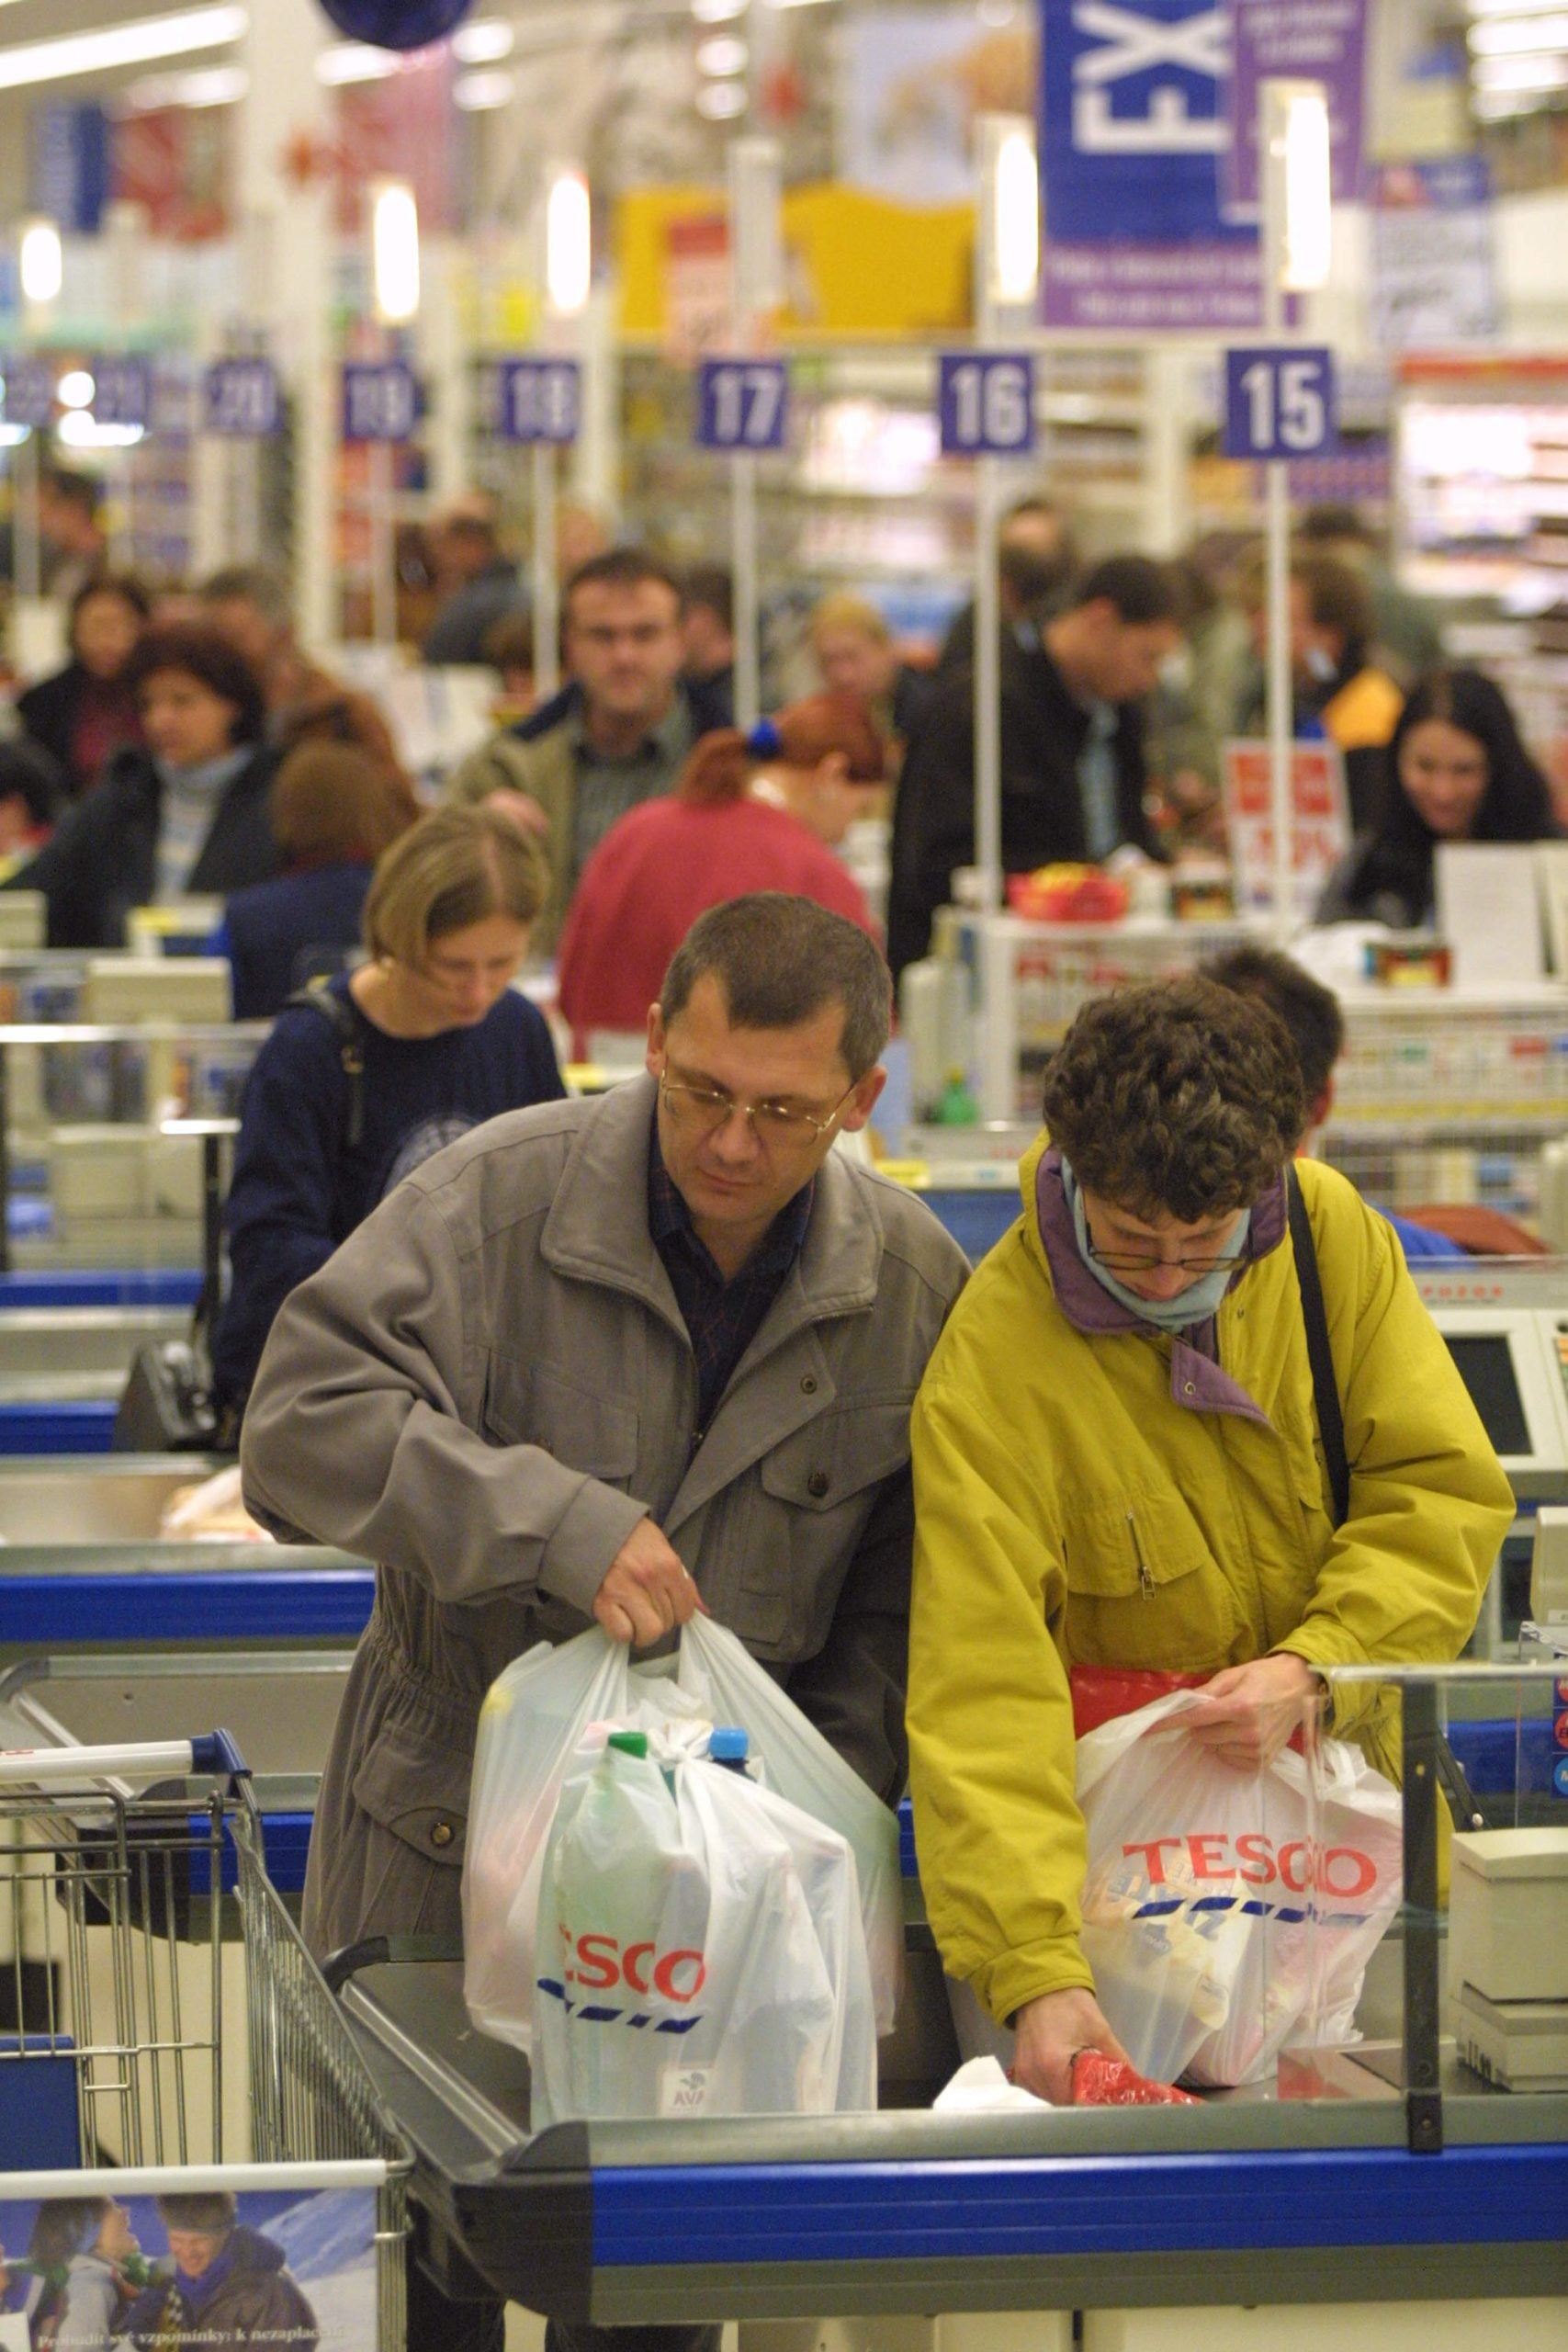 Had a meltdown at a self-service checkout? You're not alone...